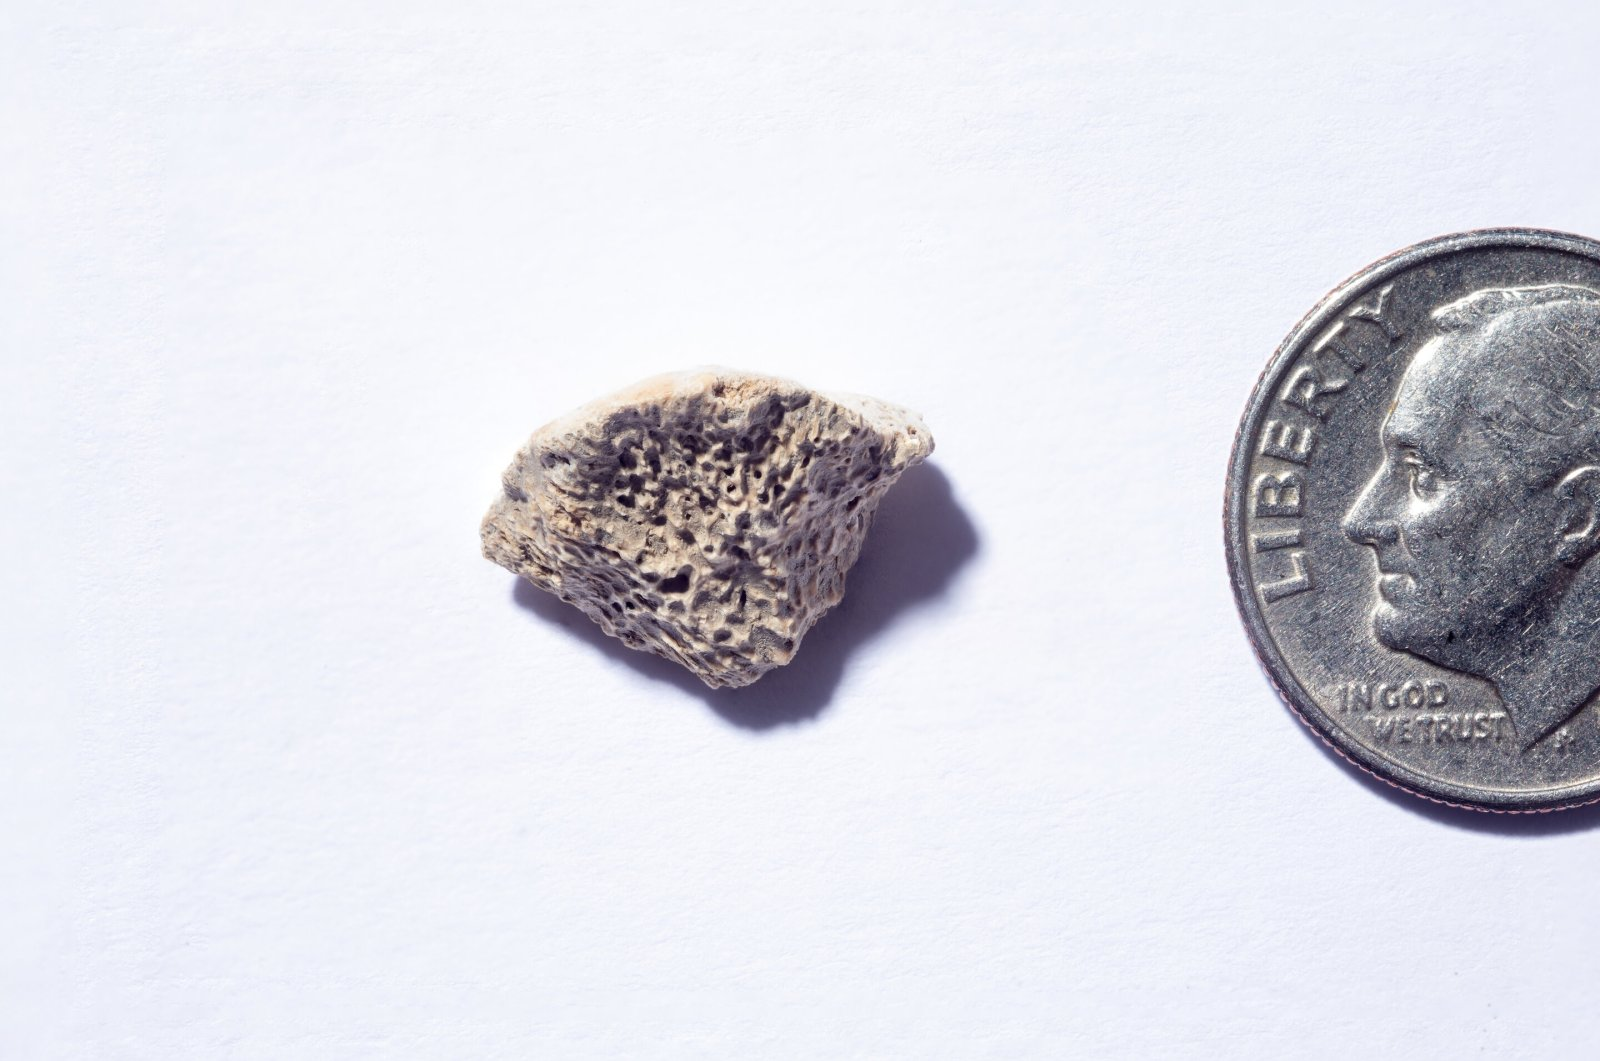 The bone fragment, a piece of femur smaller than a nickel, belongs to a dog that lived more than 10,000 years ago. (Credit: Douglas Levere / University at Buffalo)